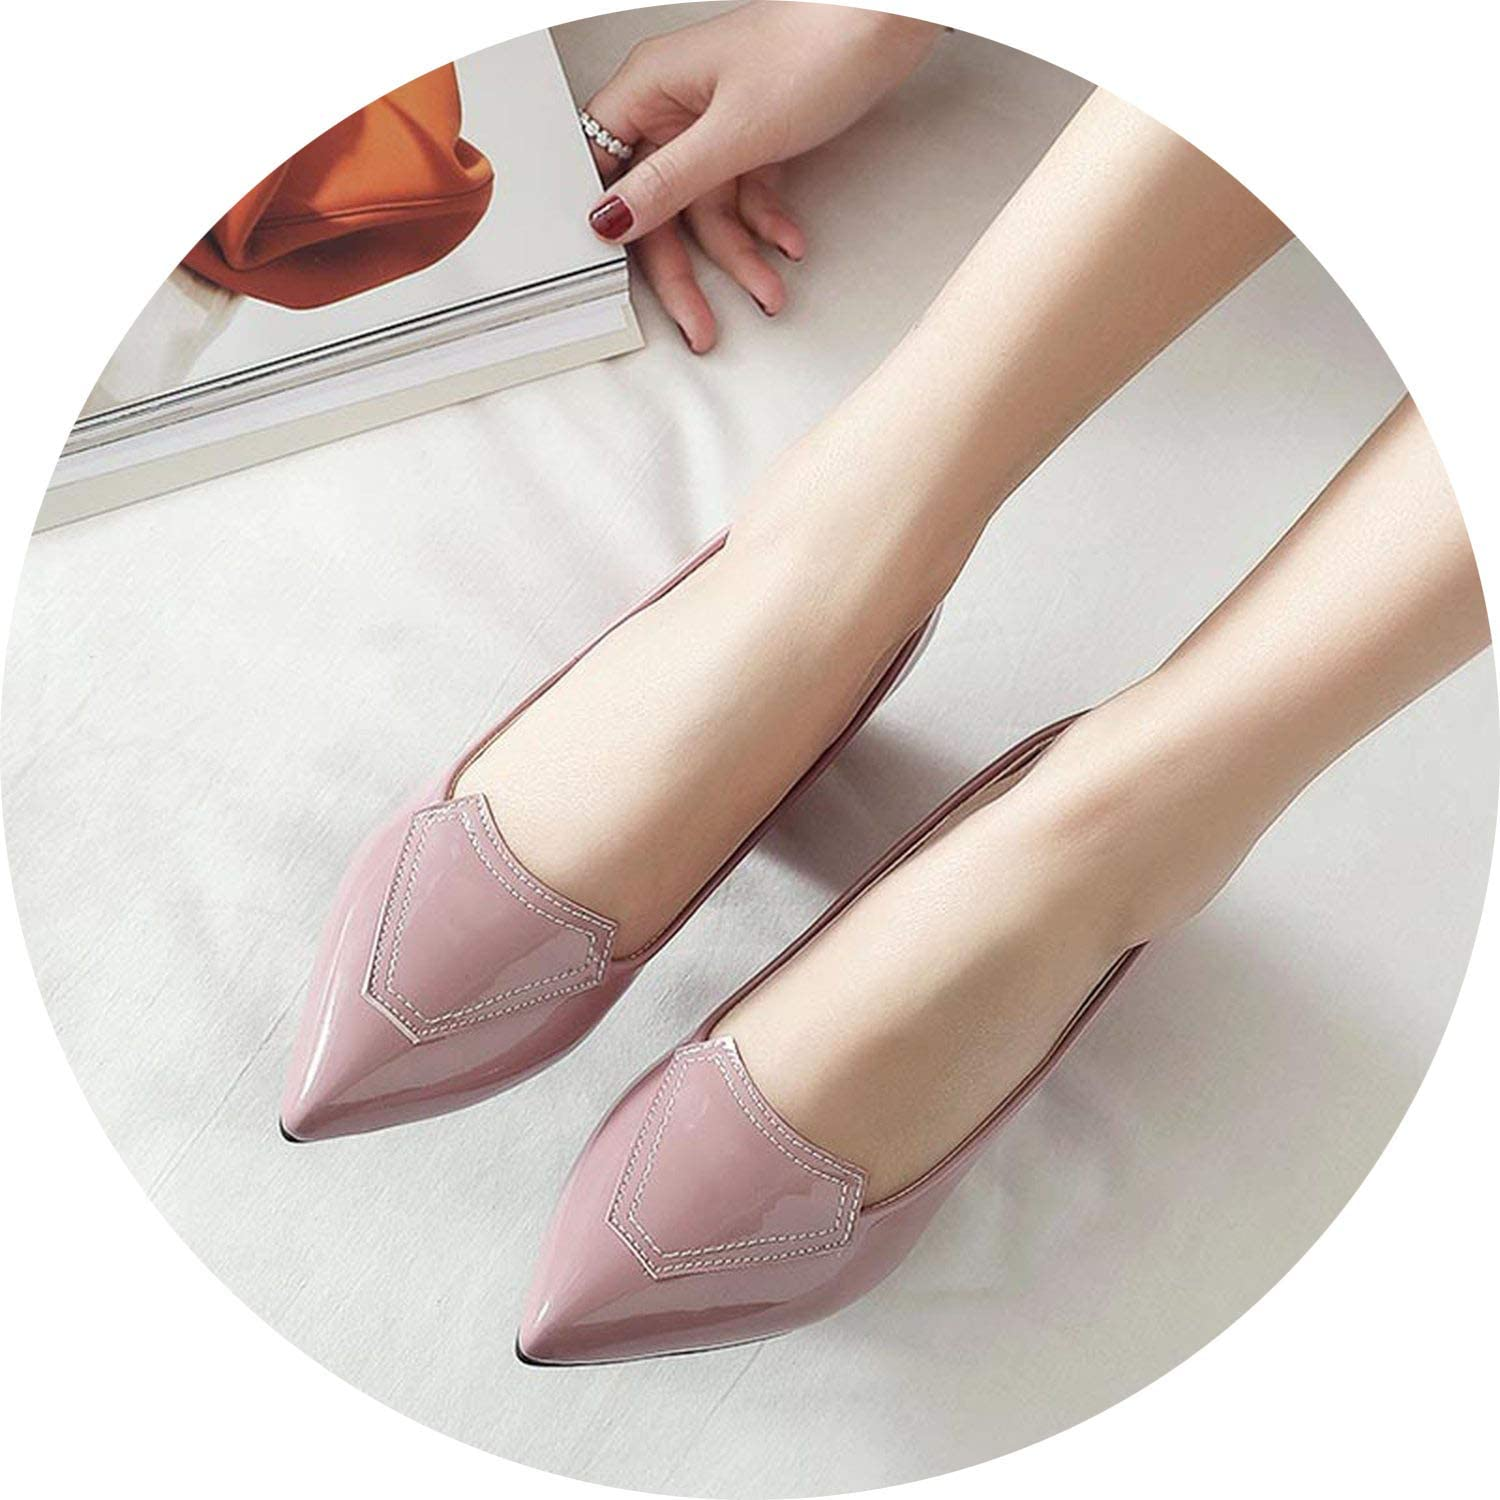 FINDYOU Women Pumps Thick Heel Wedding Party shoes Women OL Pointed Toe 7CM High Heel Pumps Red Black Pink shoes